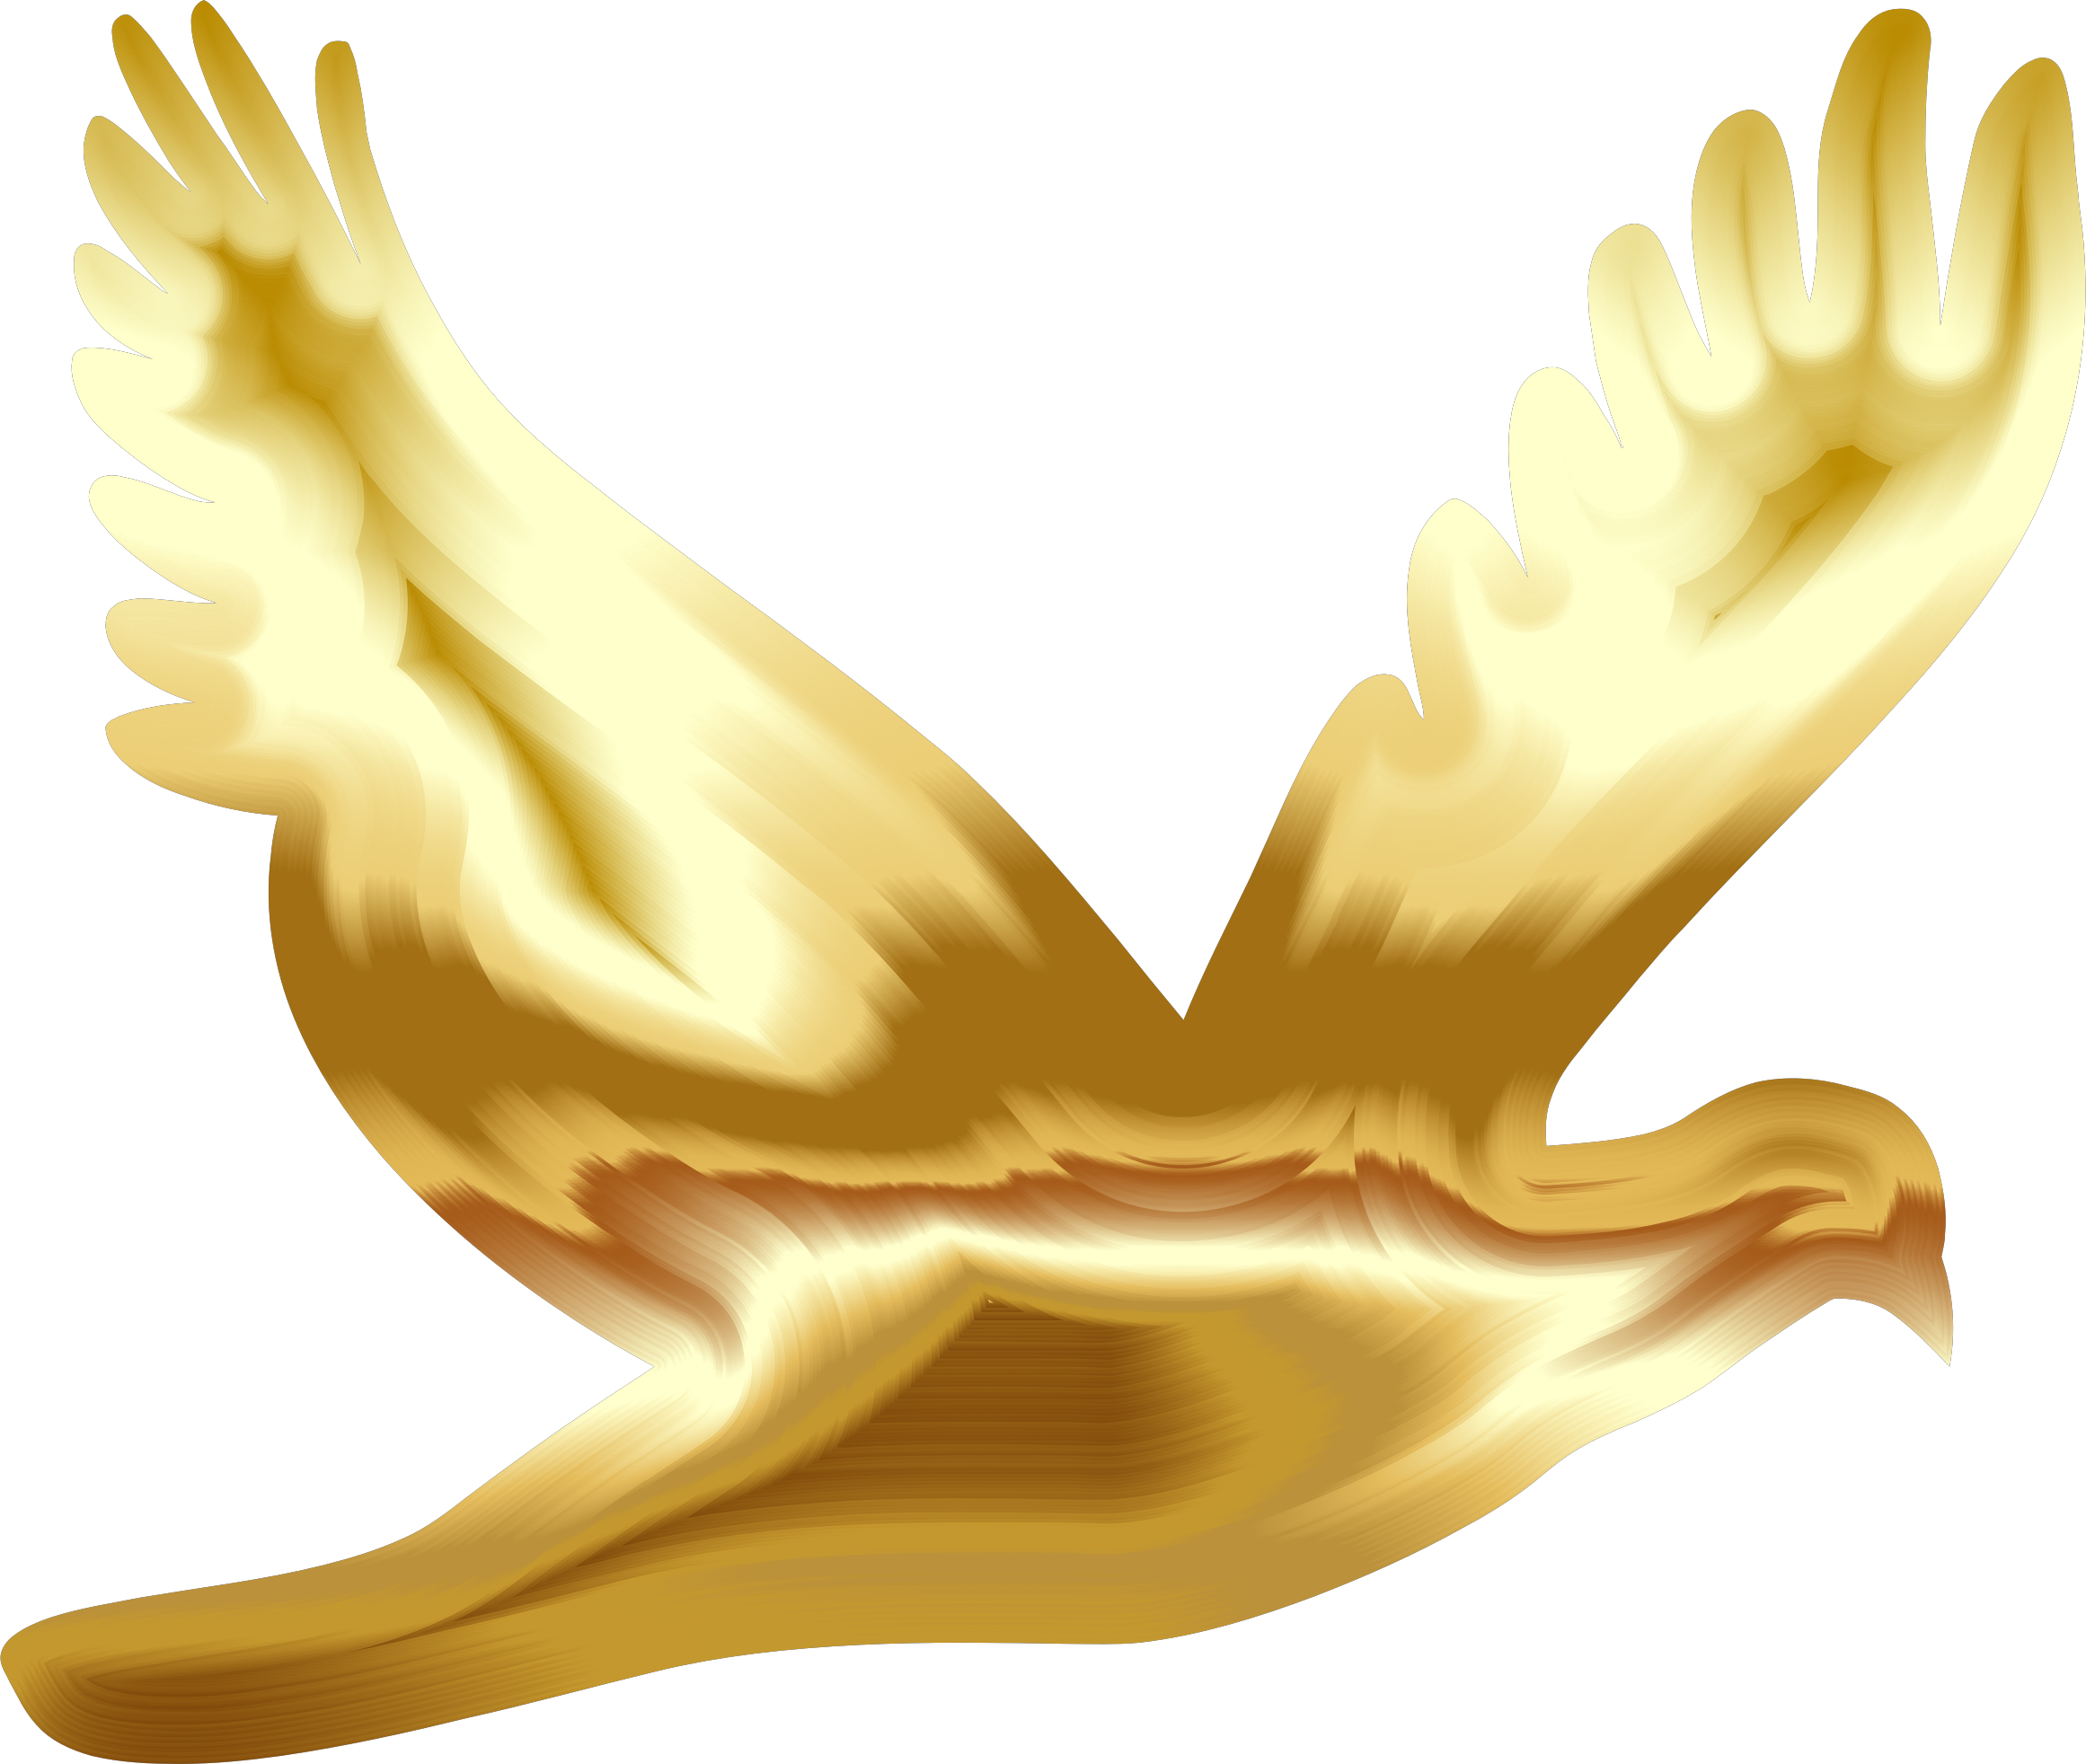 Gold Flying Dove Silhouette No Background by GDJ